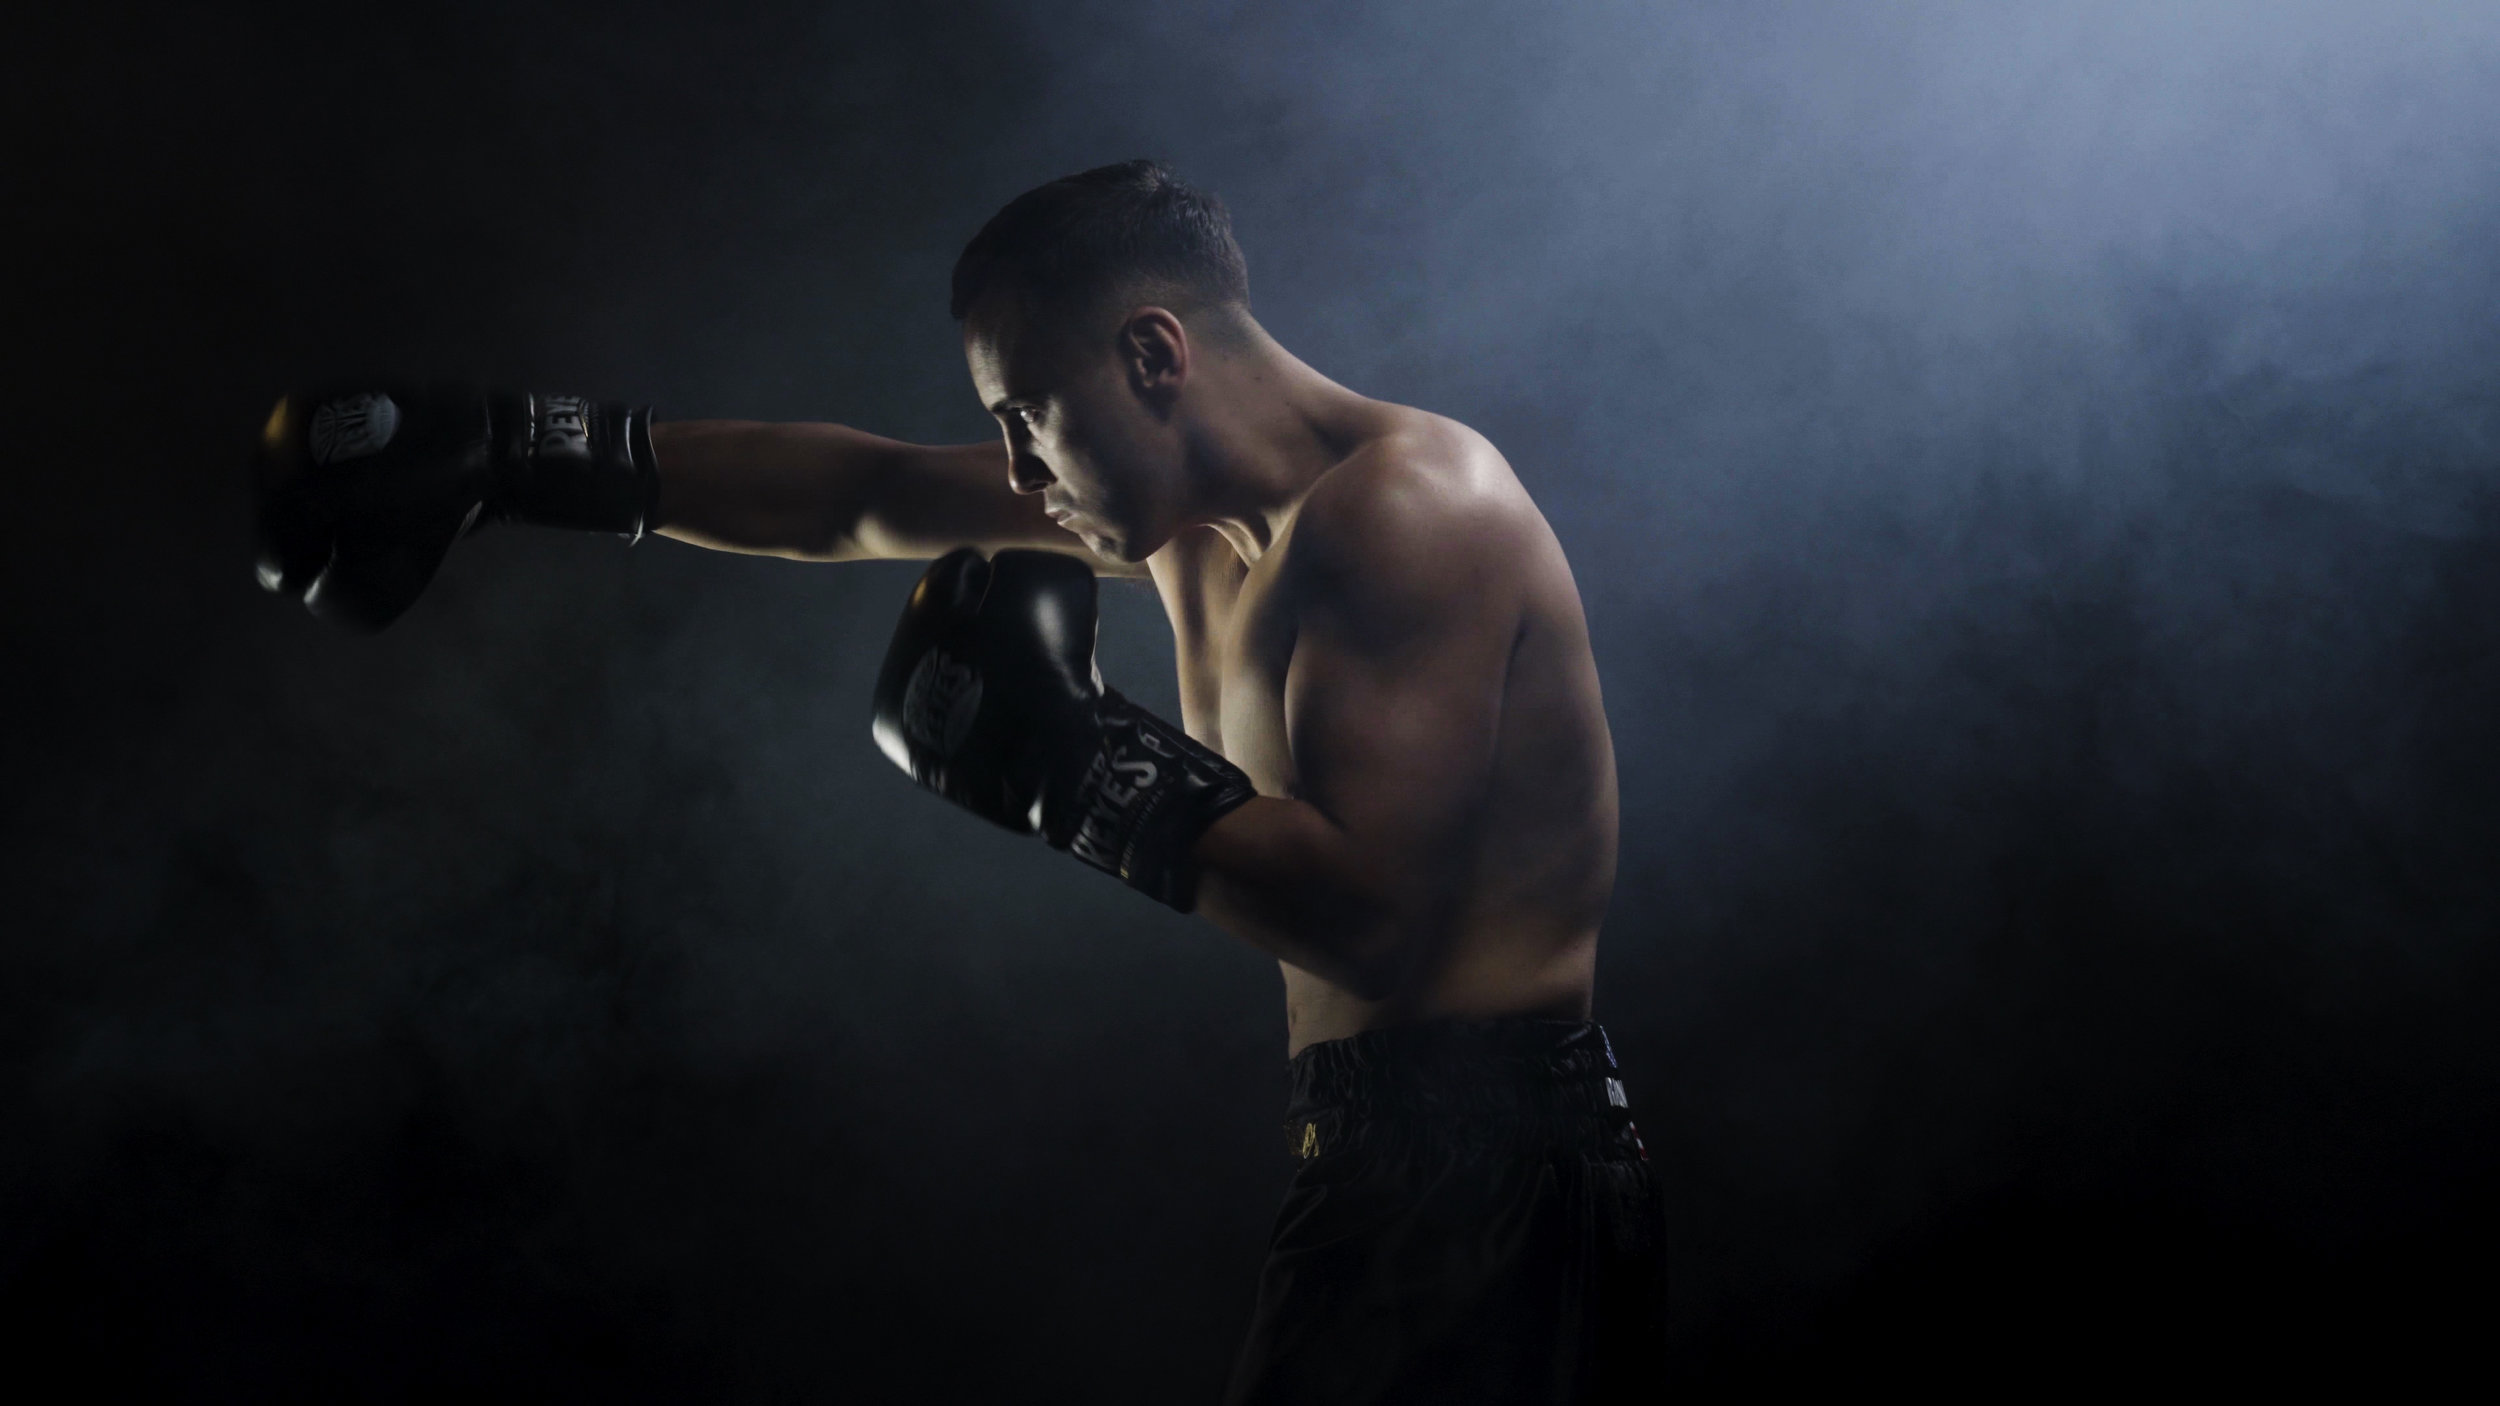 Ricky Colosimo - Online ContentMedia: Stills & VideoRicky is a fighters fighter with heart and speed. He trains with desire and fights like there is no tomorrow.